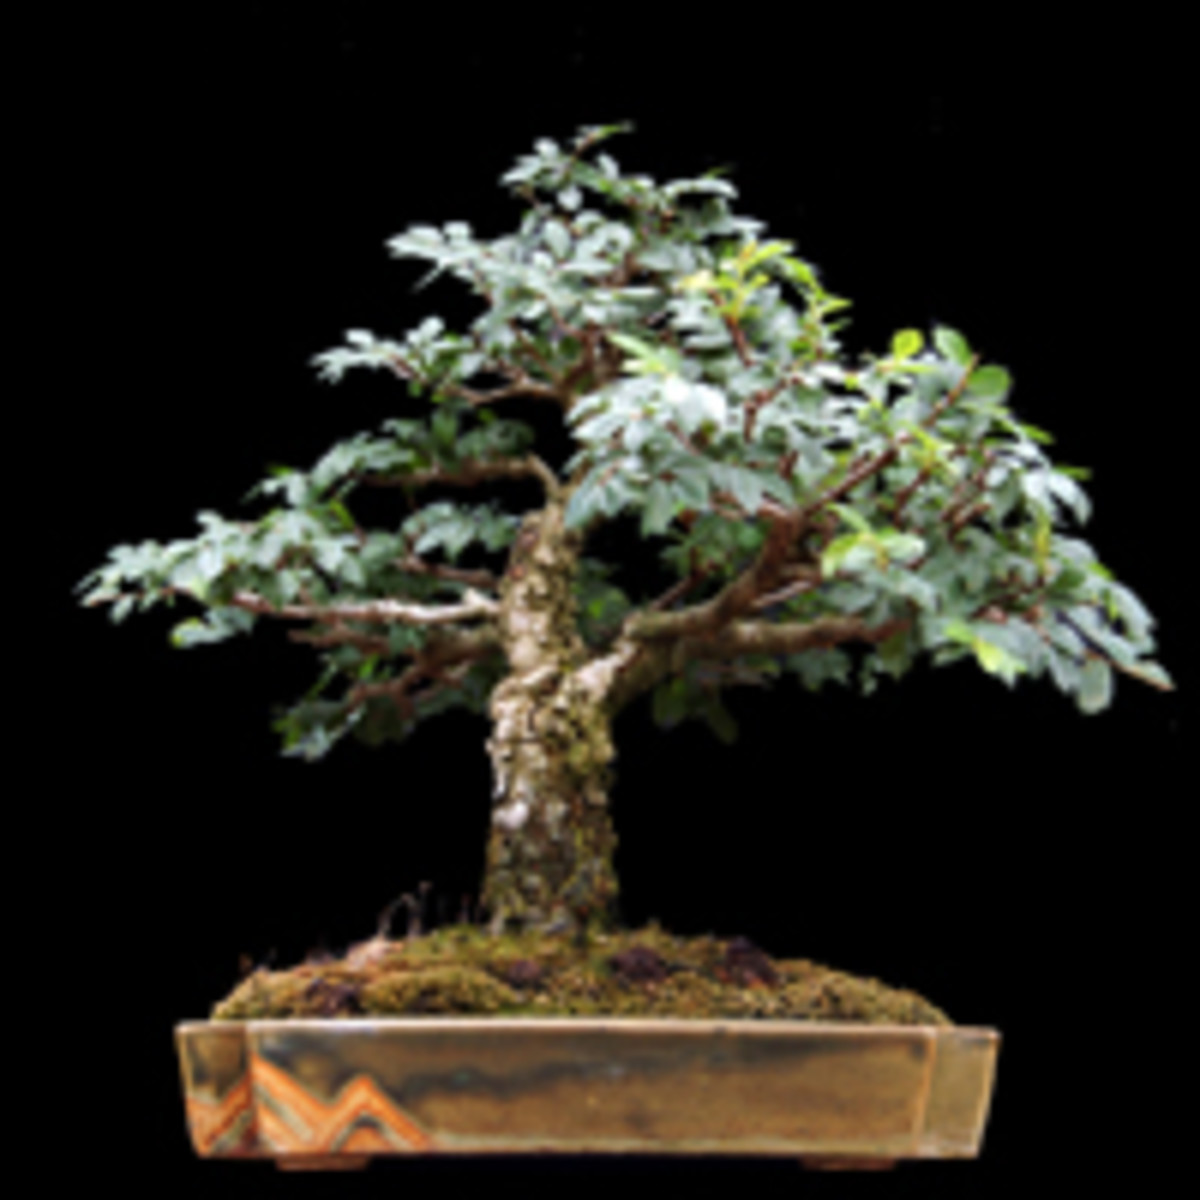 In bonsai form